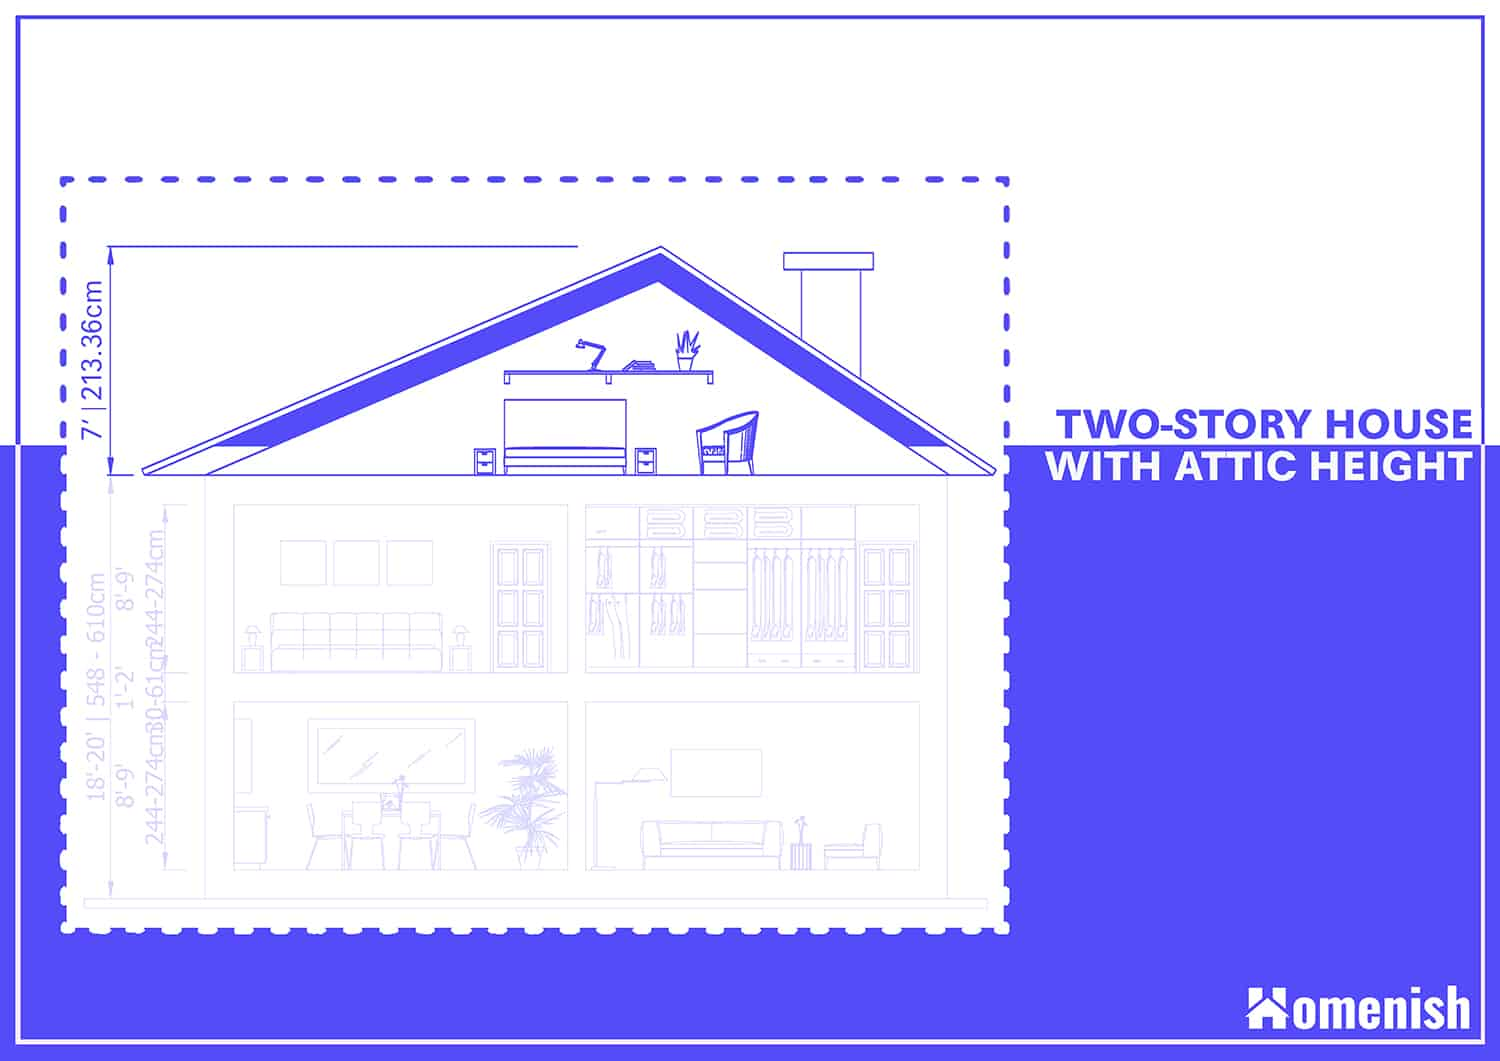 Two Story House with Attic Height